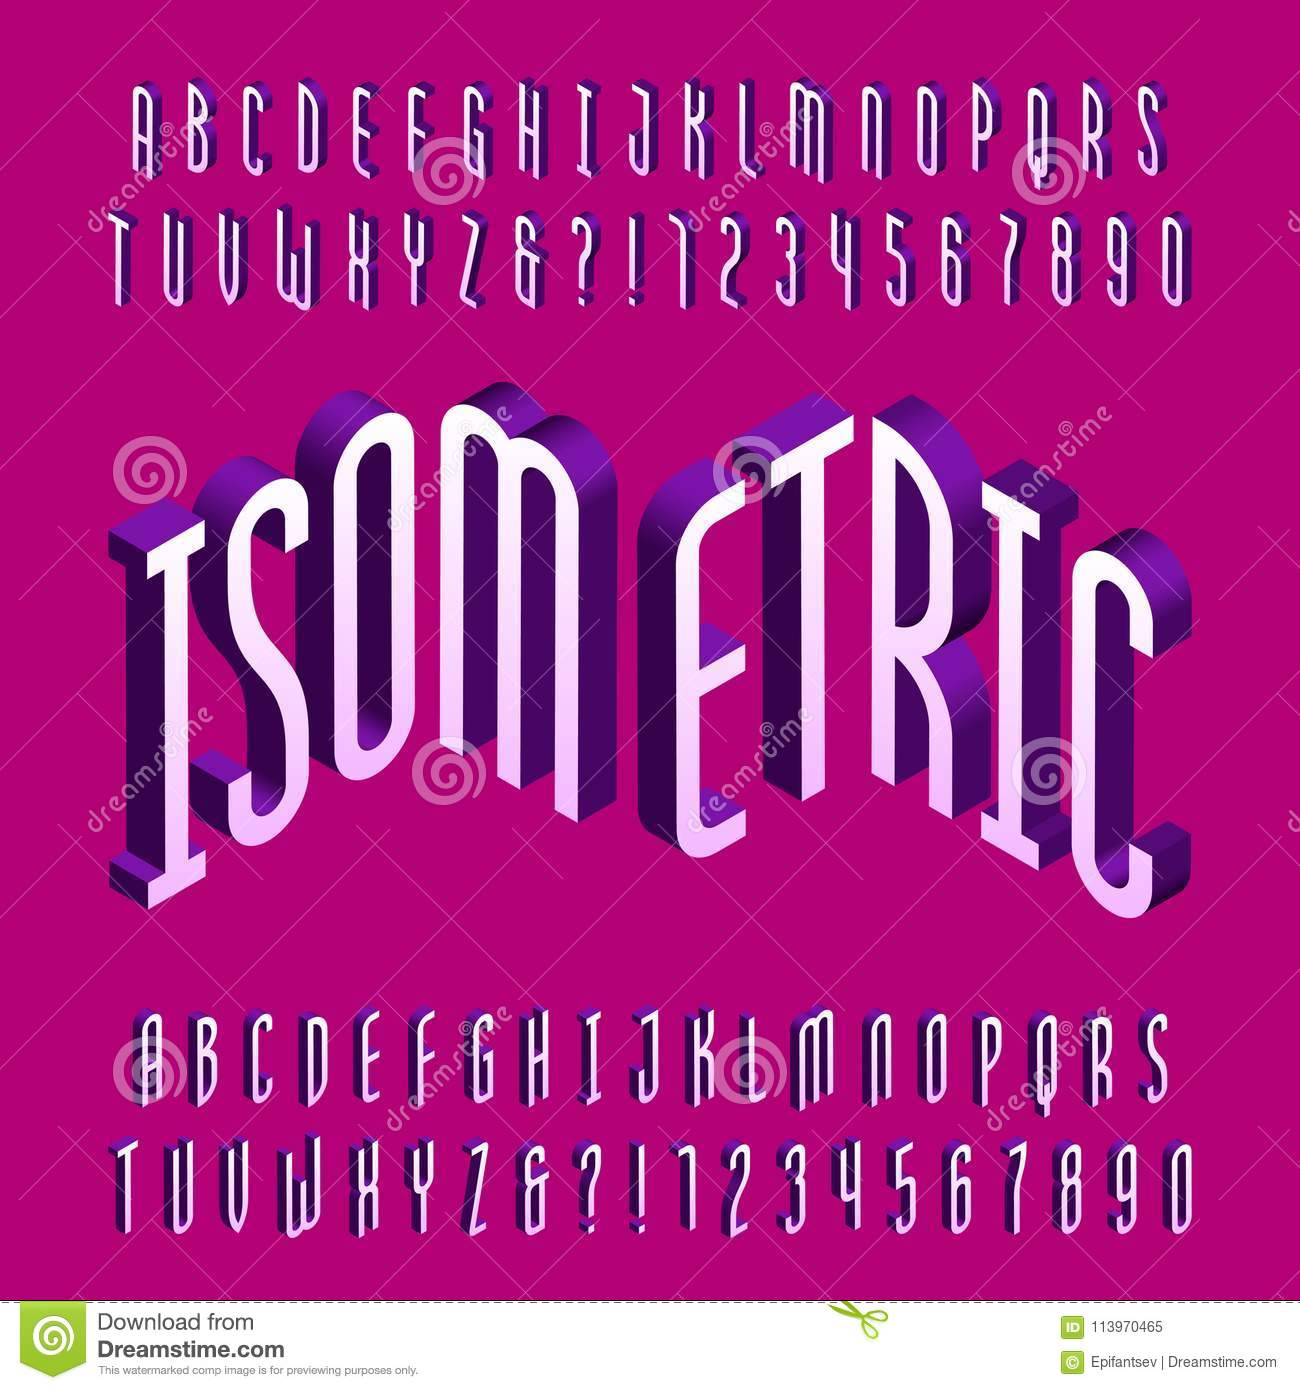 Thin Isometric Alphabet Font. Three-dimensional Effect Letters And ...